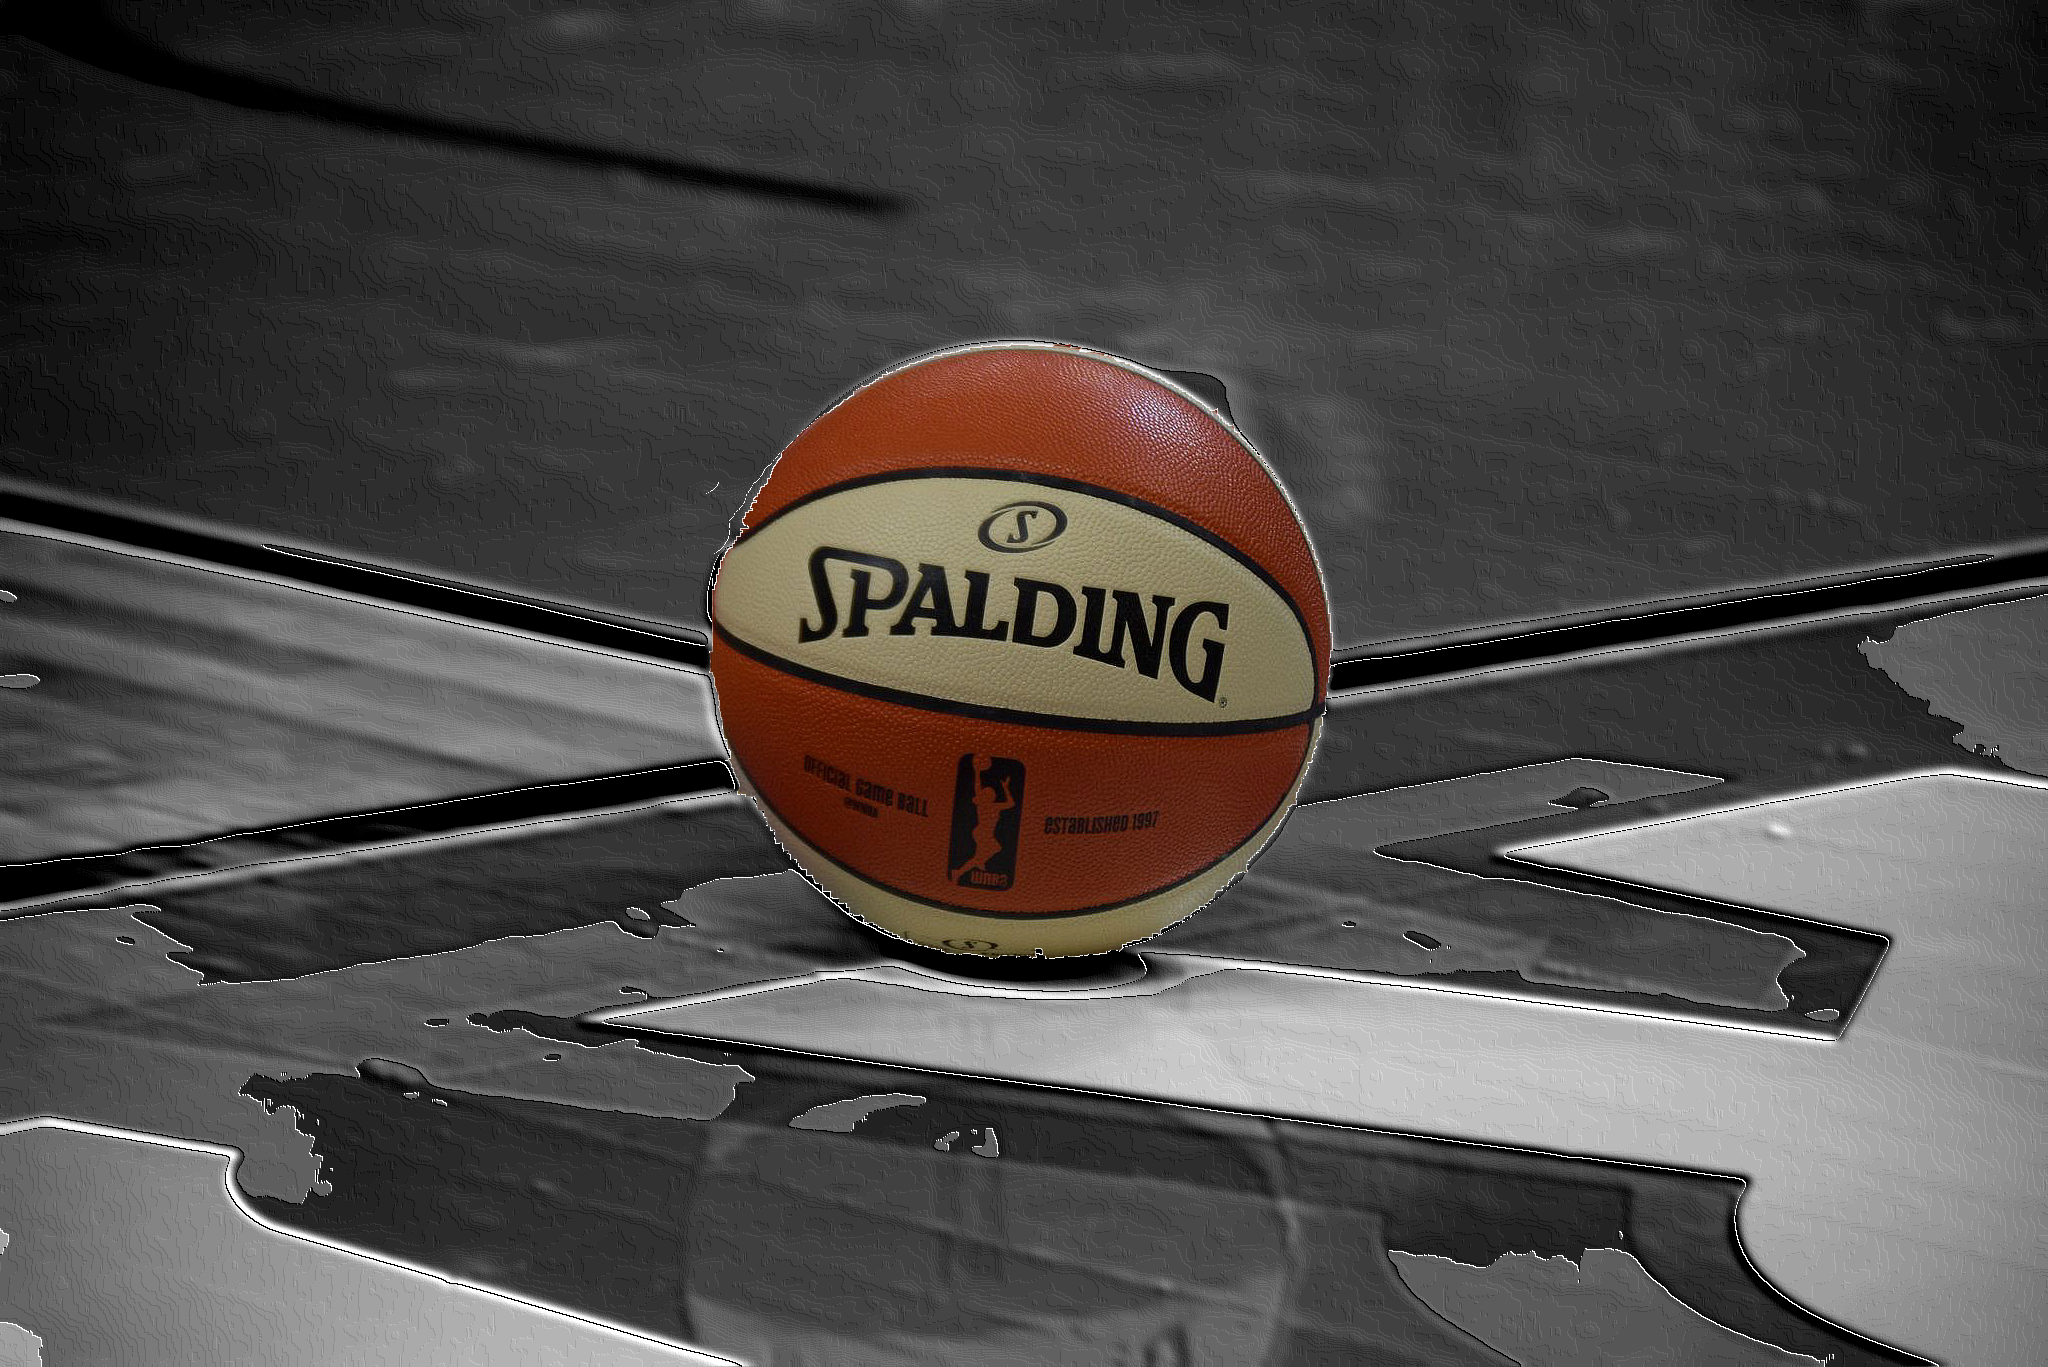 WNBA's Spaulding game ball – a photo edit